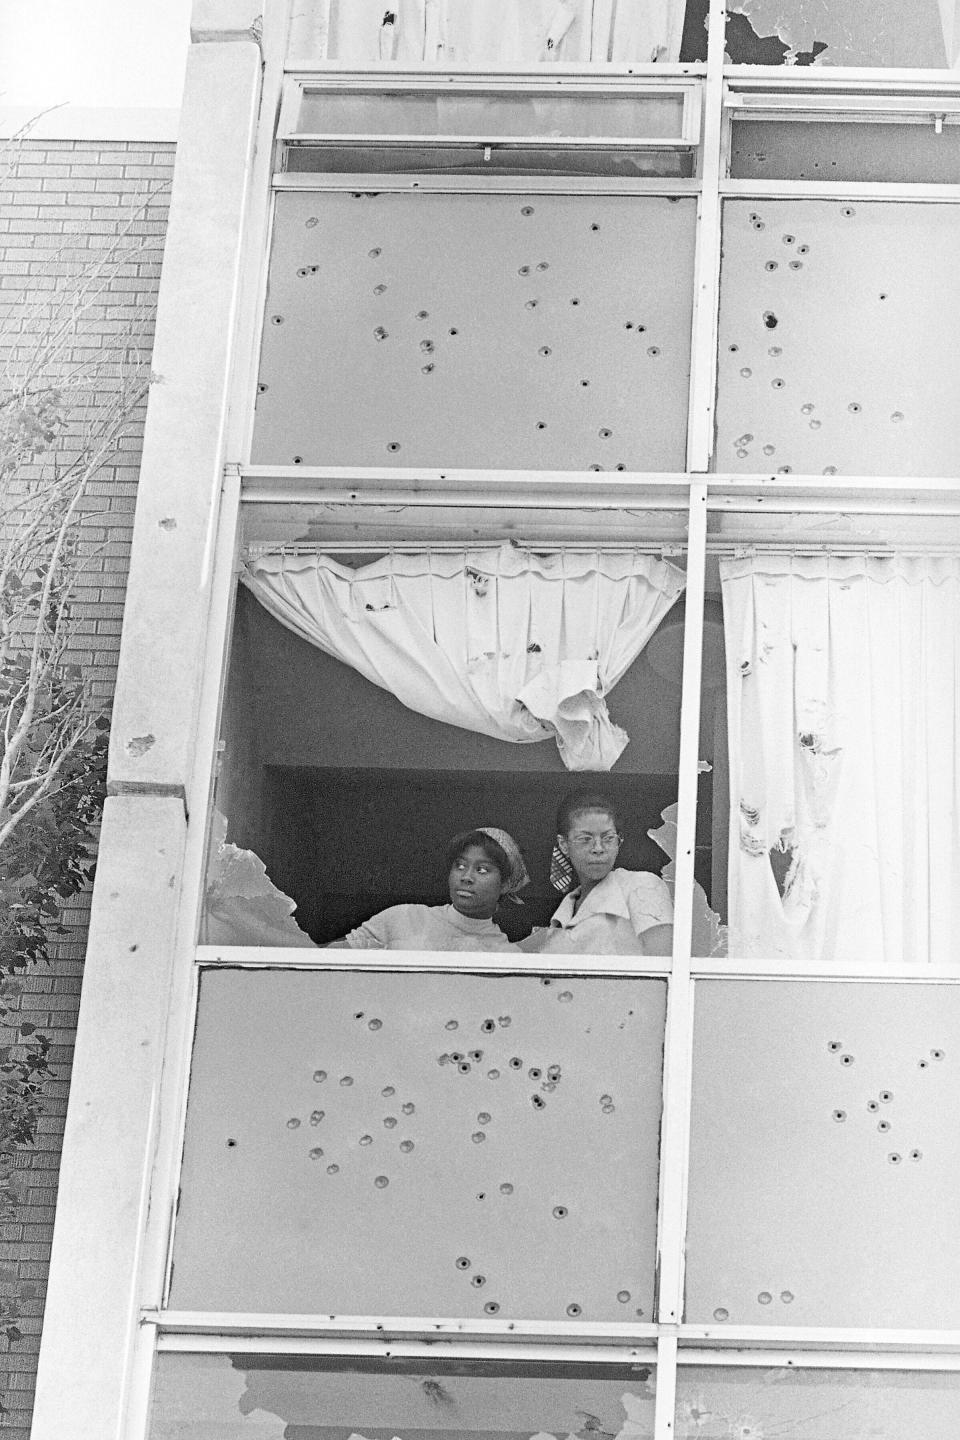 FILE - In this May 15, 1970, file photo, two students at Jackson State College, peer from a window at Alexander Hall, that was shot out by police on campus that morning, in Jackson, Miss. Two Black students died and 12 people were wounded as police shot indiscriminately, riddling the windows of the women's dormitory as officers claimed they had seen a sniper. The historically Black school canceled its 1970 commencement after the violent incident. Fifty-one years later, the school now called Jackson State University is honoring its Class of 1970, as members are being invited back to salute their academic achievements with a graduation ceremony Saturday, May 15, 2021. (AP Photo/Jack Thornell, File)